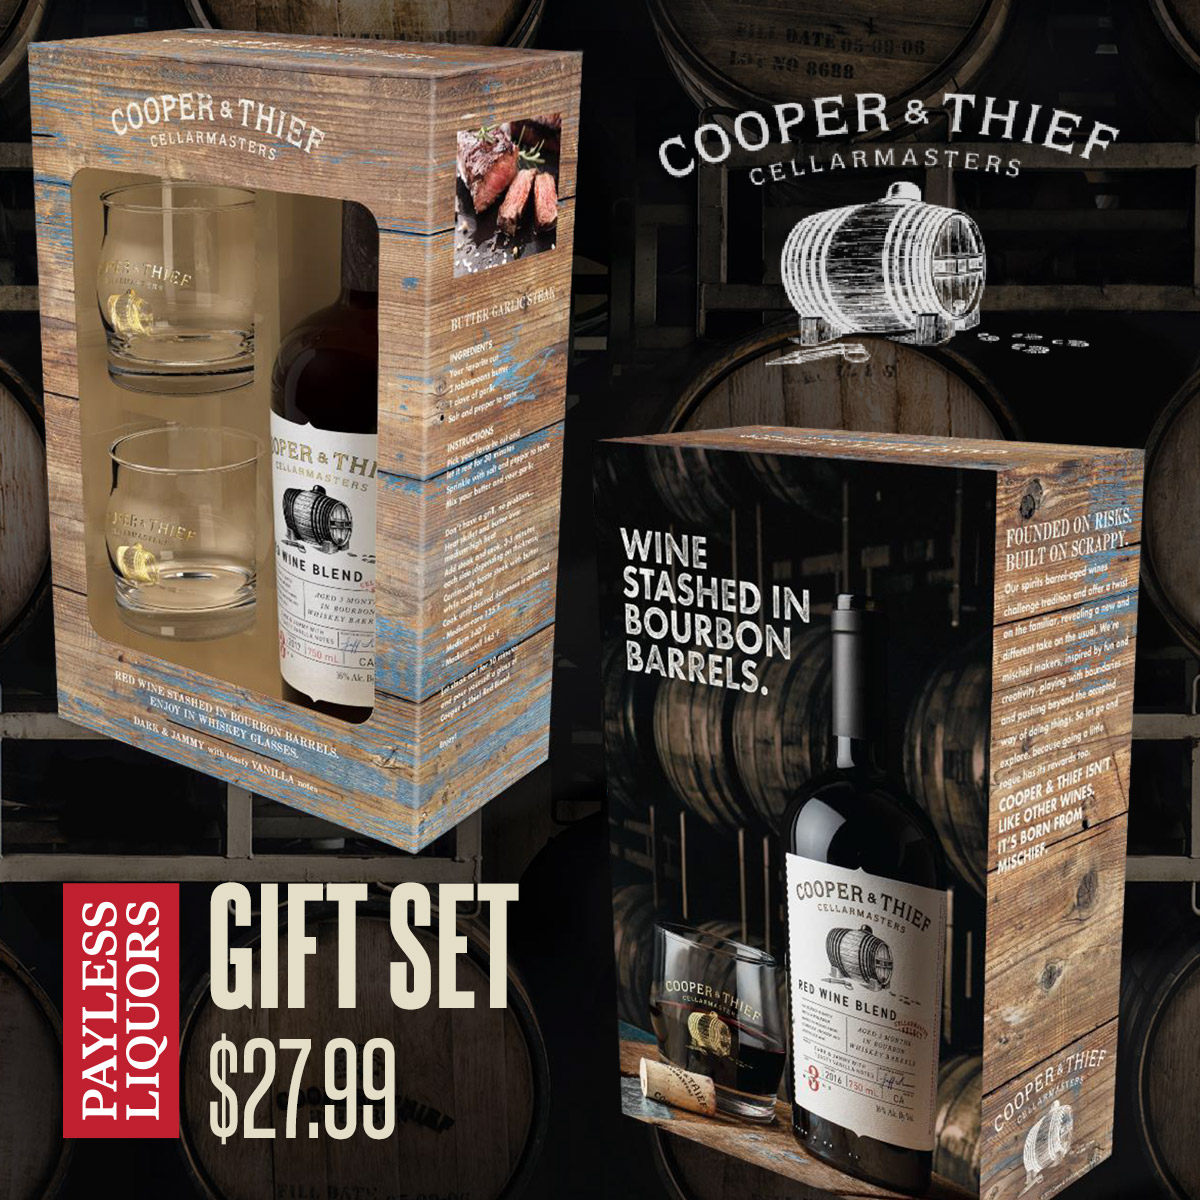 Father's Day Cooper & Thief Gift Set